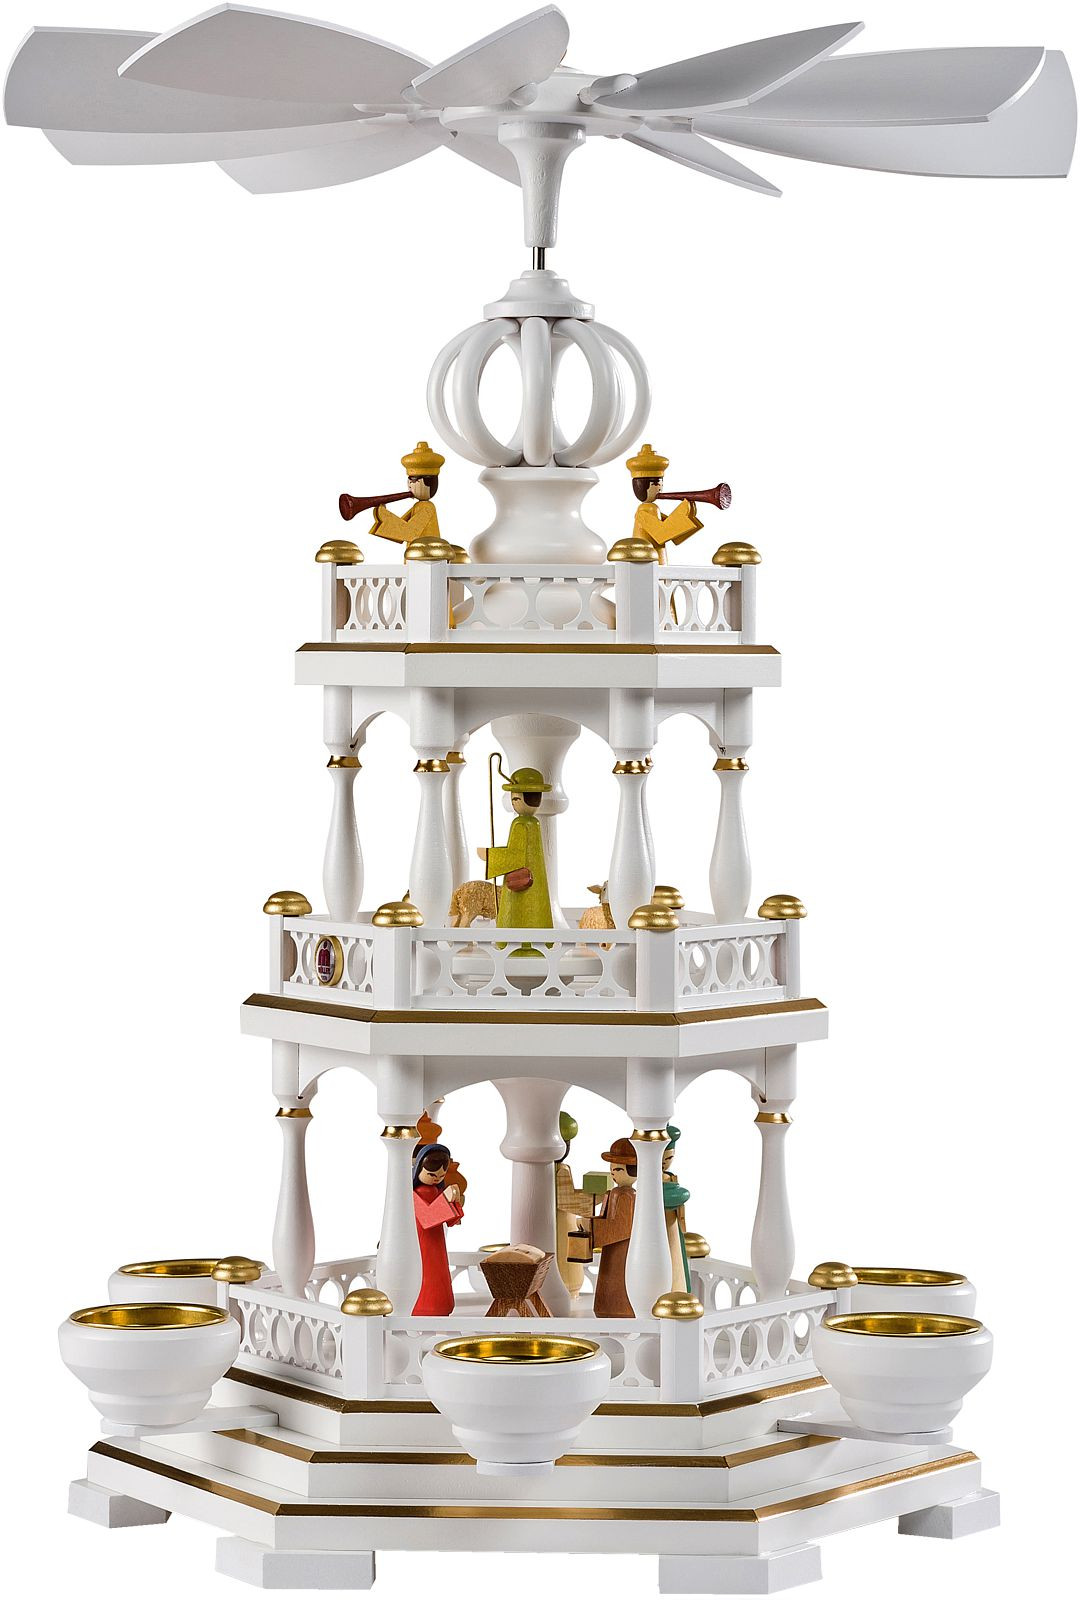 2-storeyed pyramid Nativity 2-story anniversary pyramid